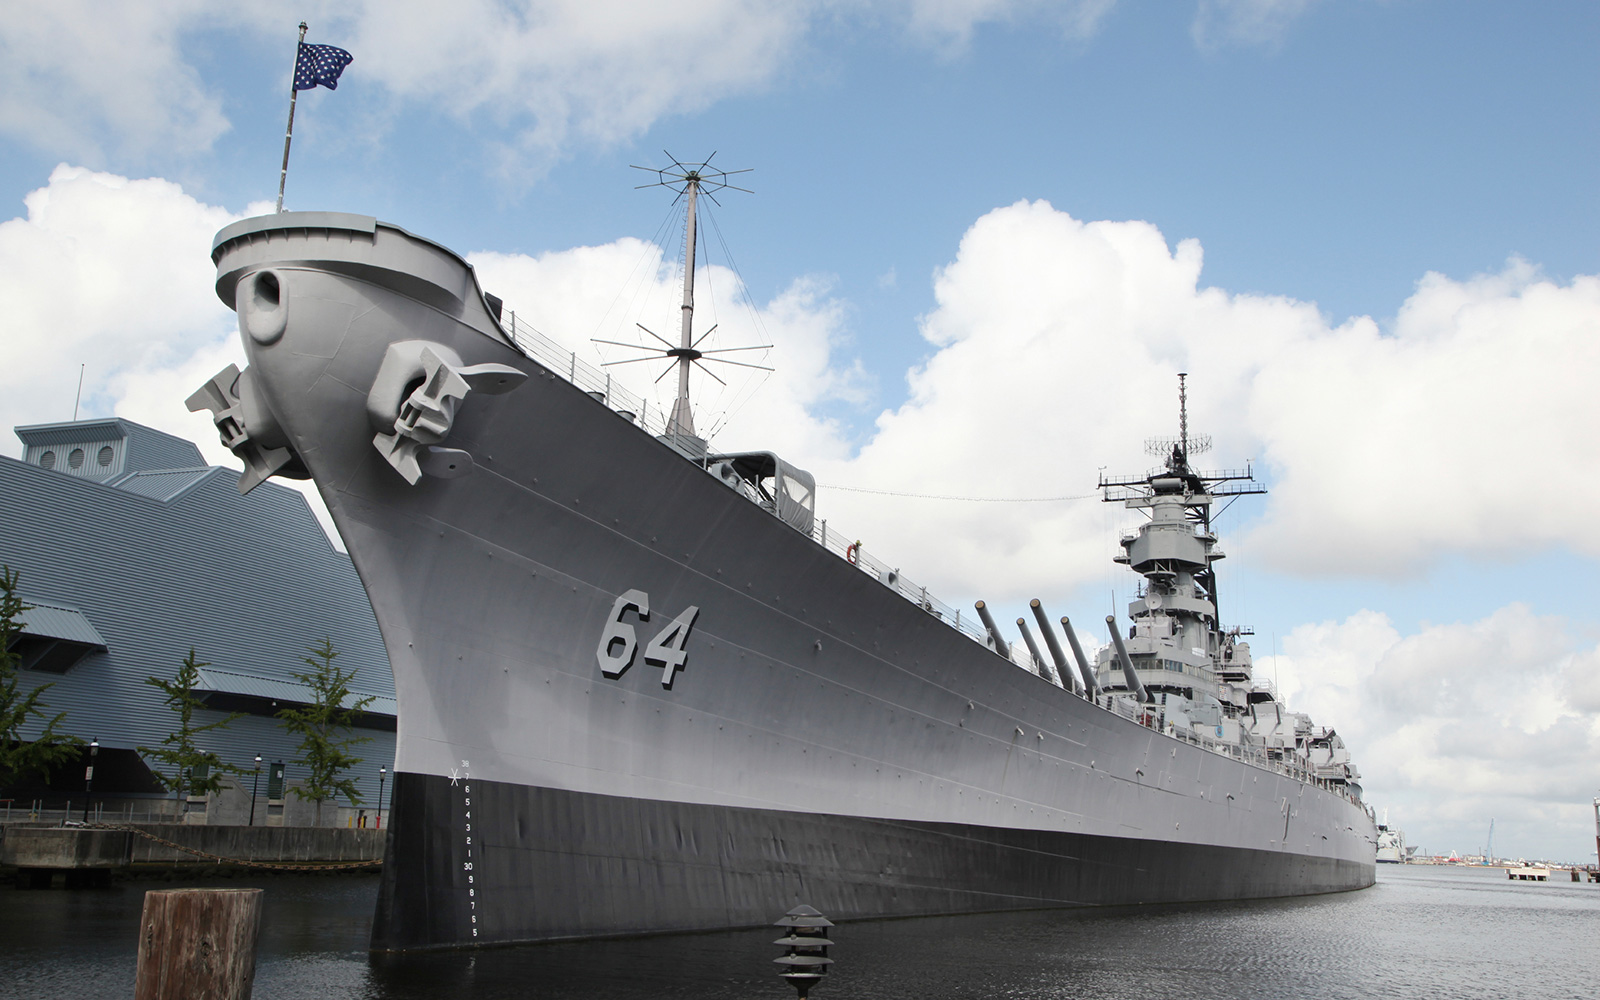 Large Navy battleship sitting dockside in water below a blue sky